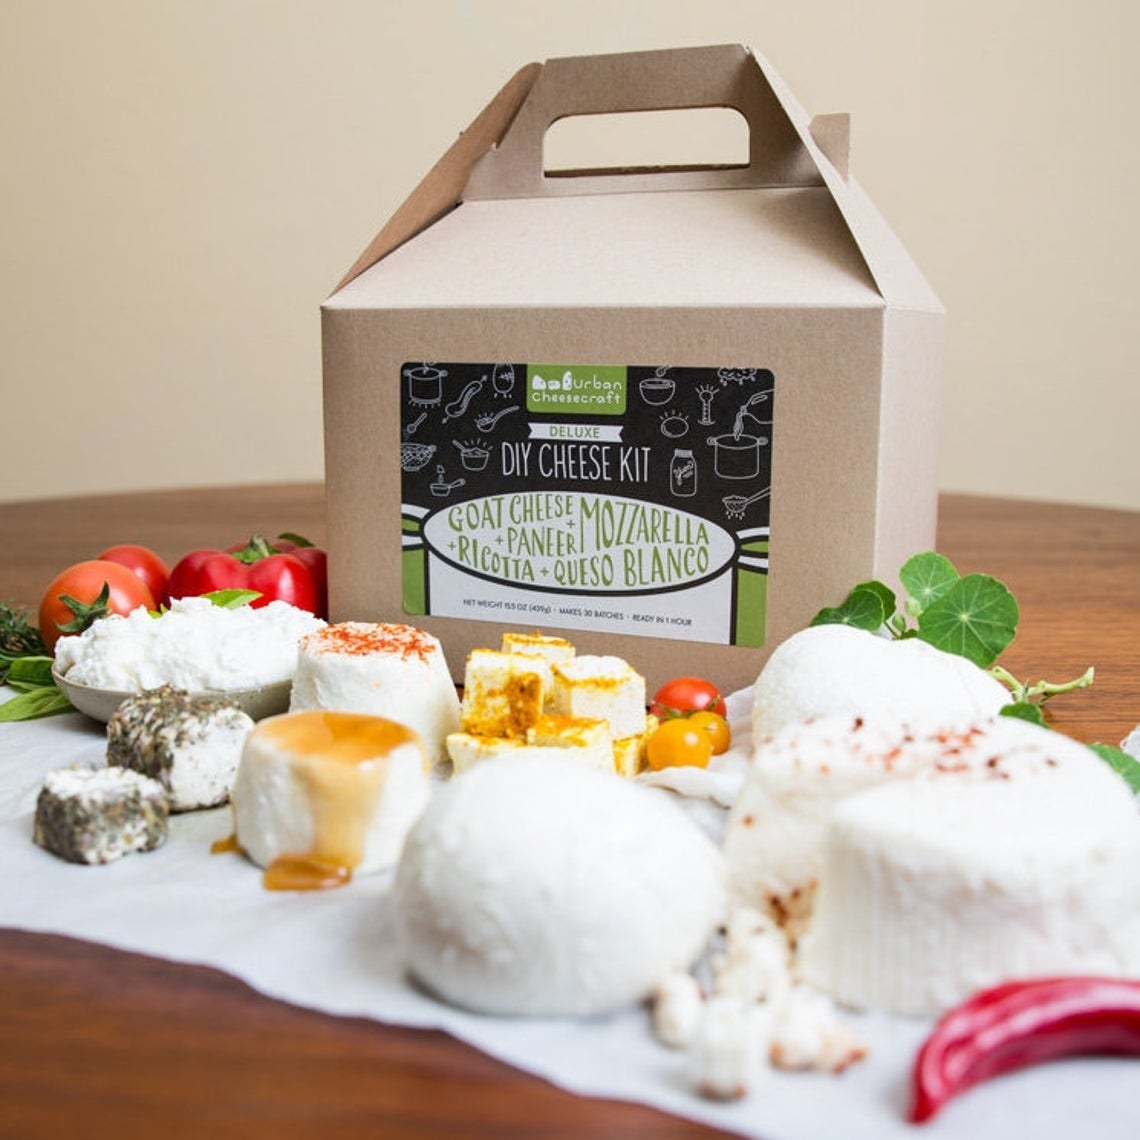 DIY cheese kit box with several types of cheese on a table